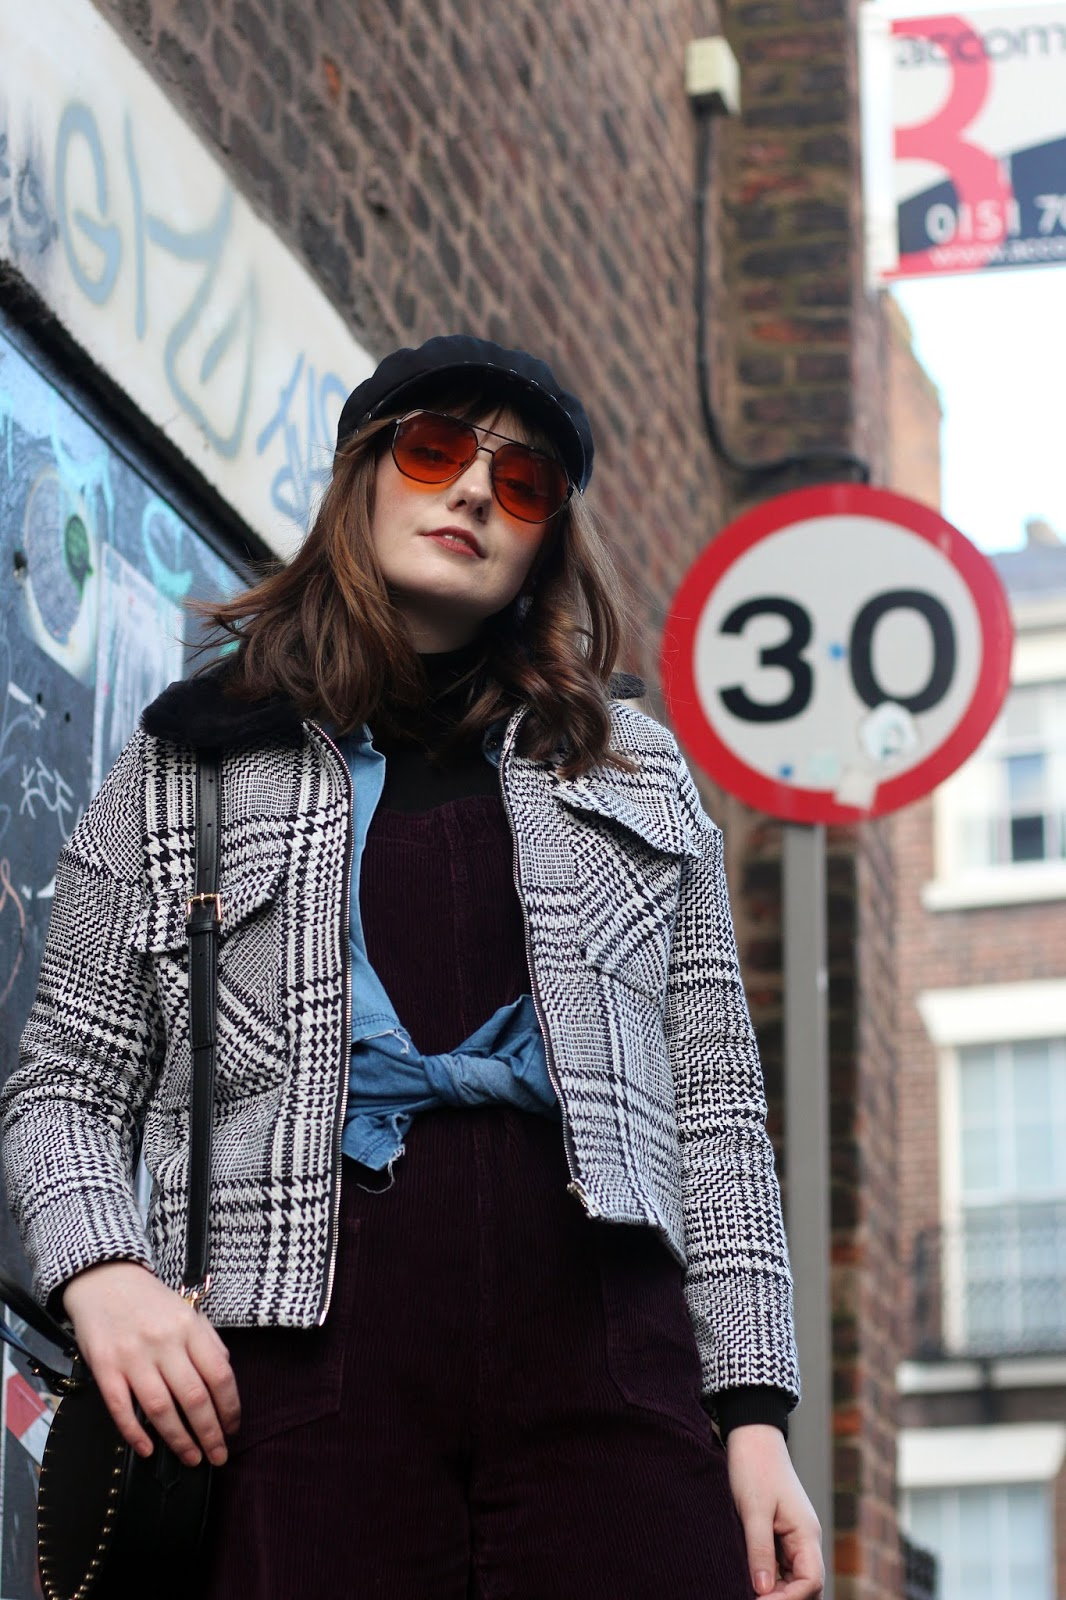 70s style fashion blogger, black baker boy cap, orange aviators, monochrome check jacket from pretty little thing, purple cord dungarees